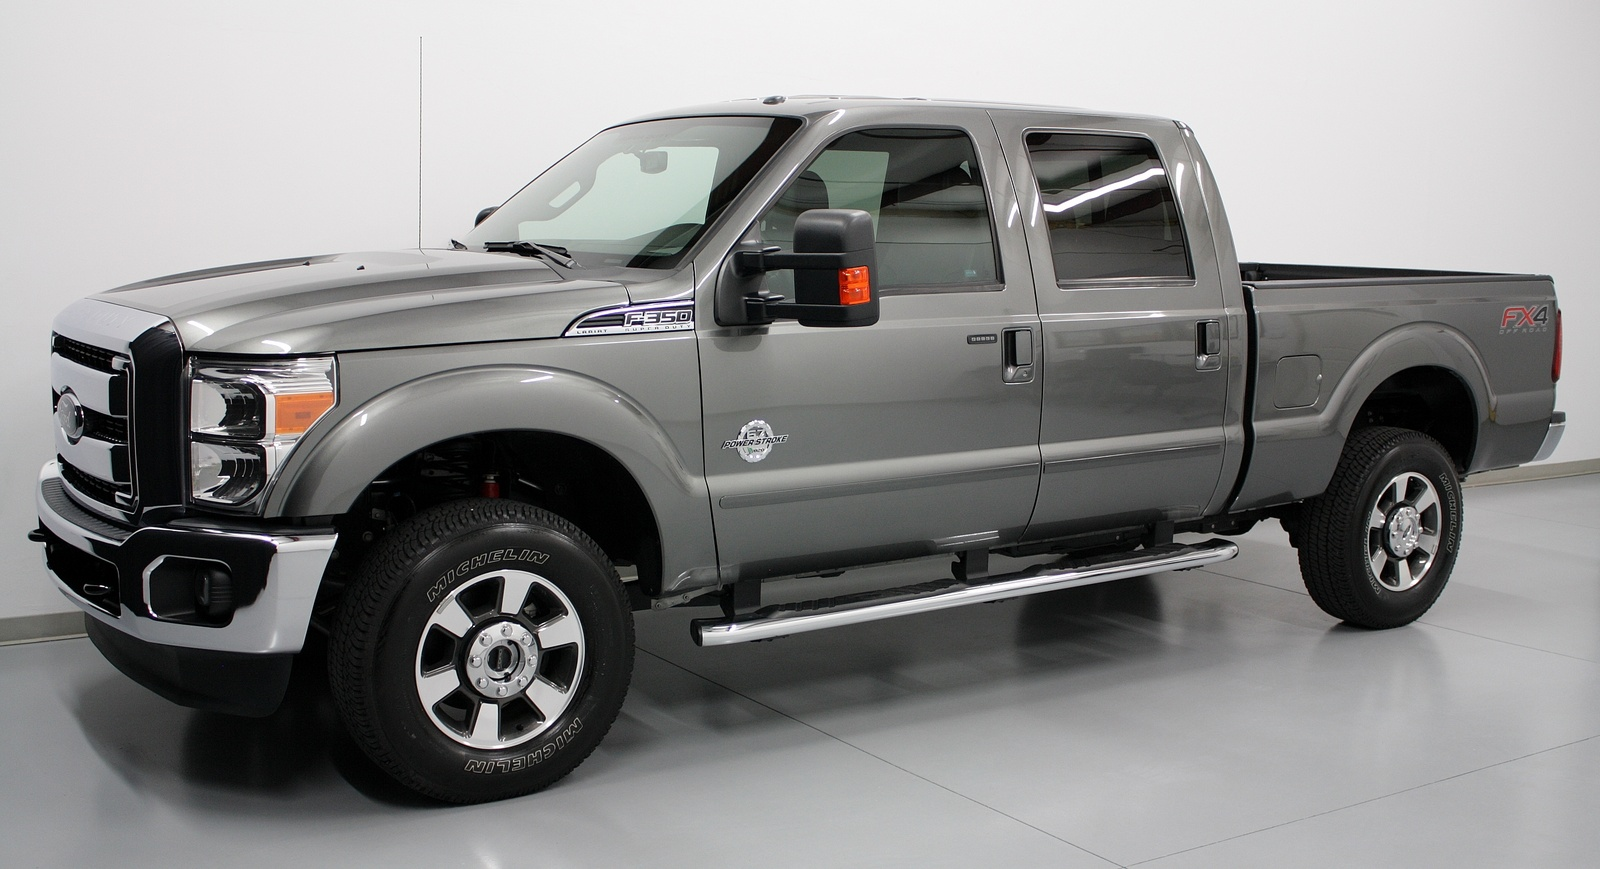 2012 ford f 350 super duty pictures cargurus. Black Bedroom Furniture Sets. Home Design Ideas